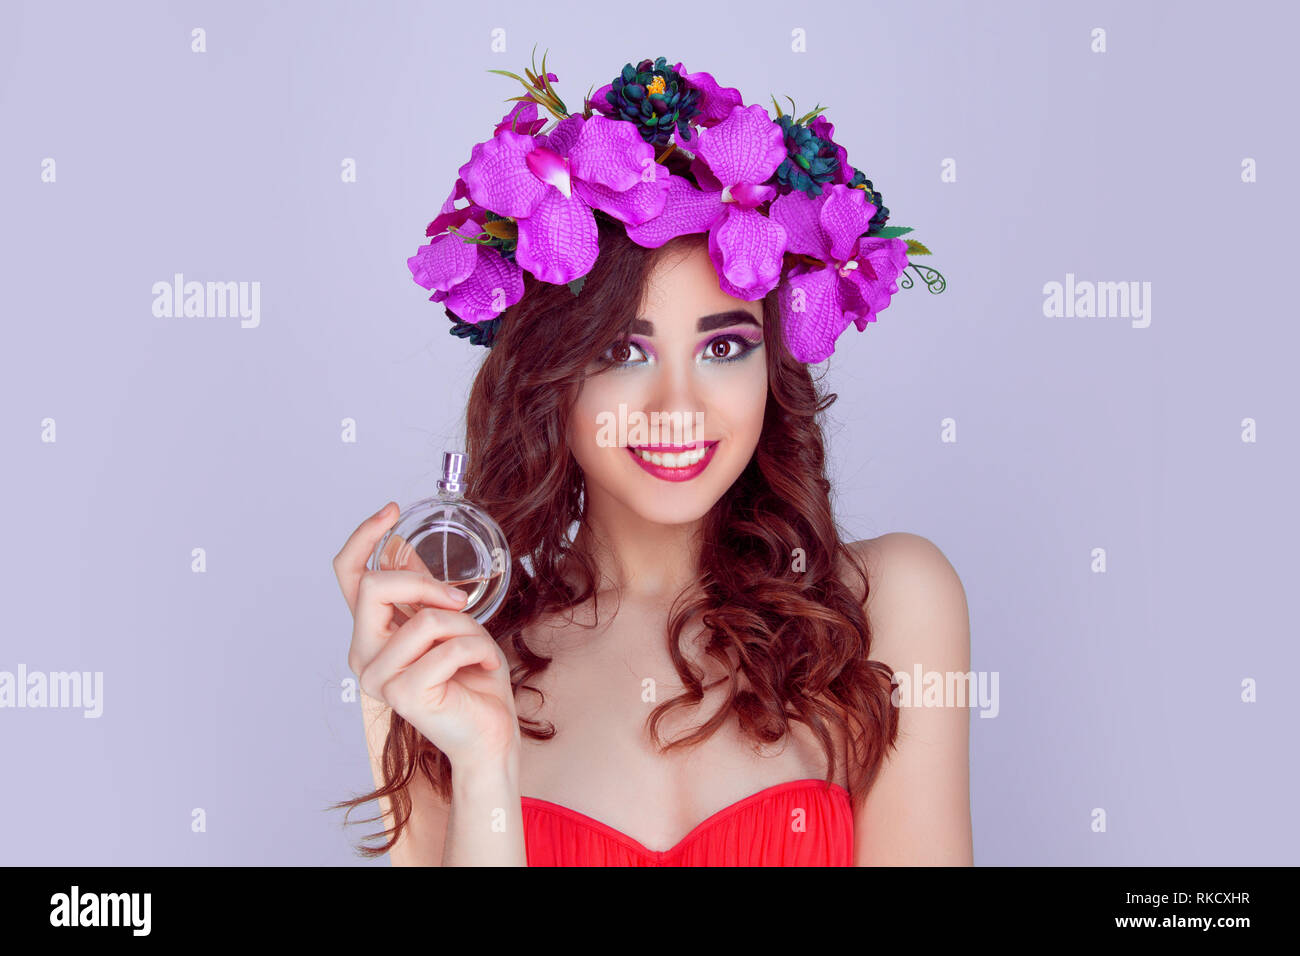 woman with floral crown giving perfume bottle - Stock Image